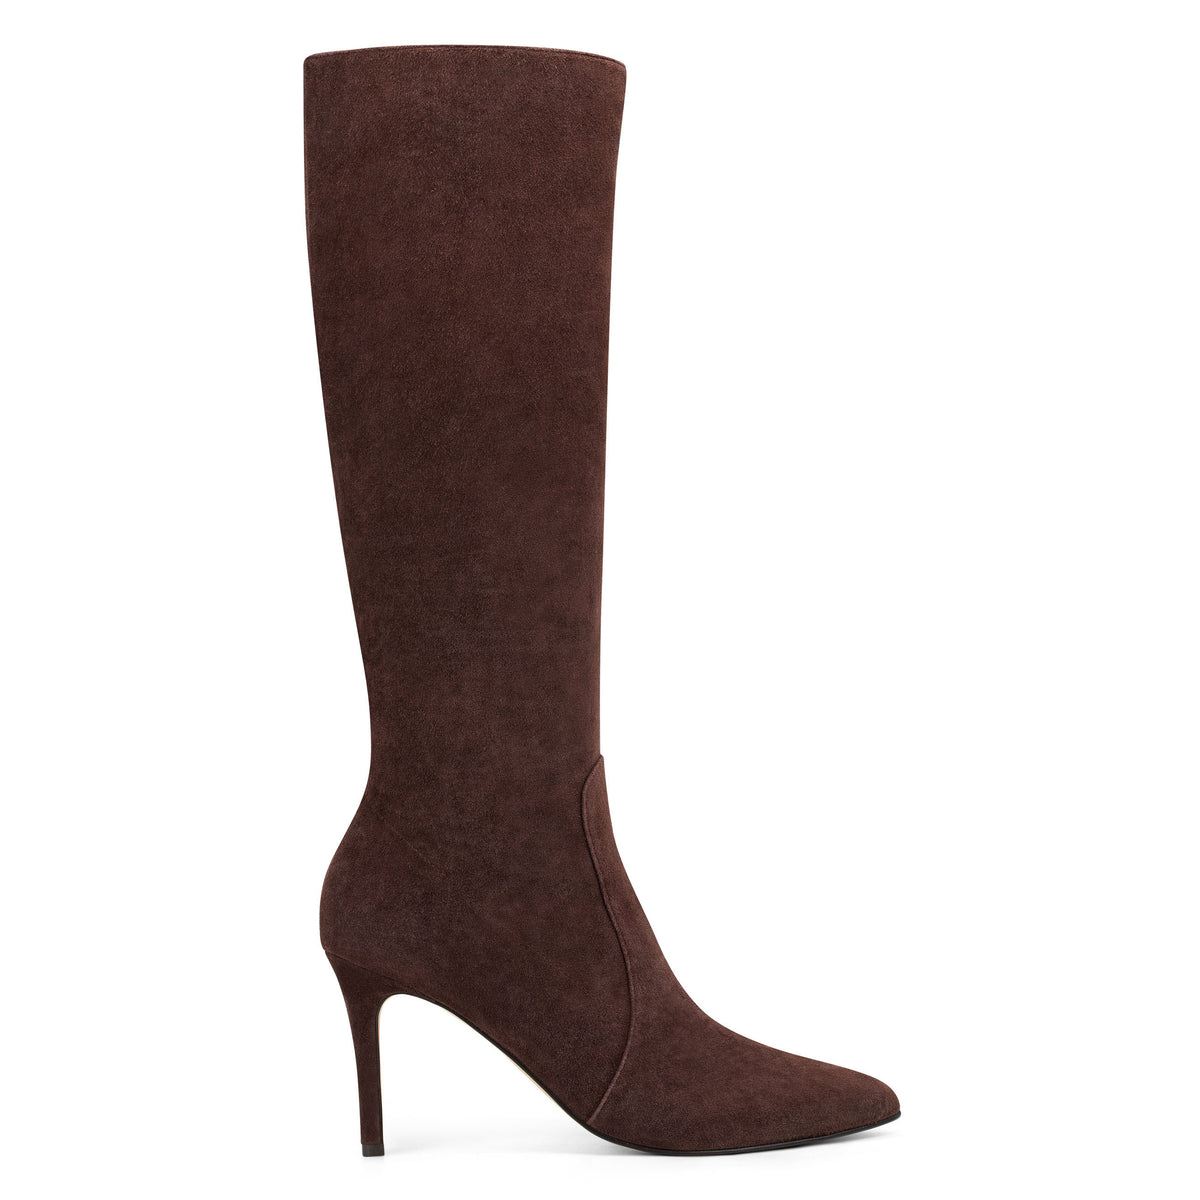 fivera-pointy-toe-boot-in-brown-suede